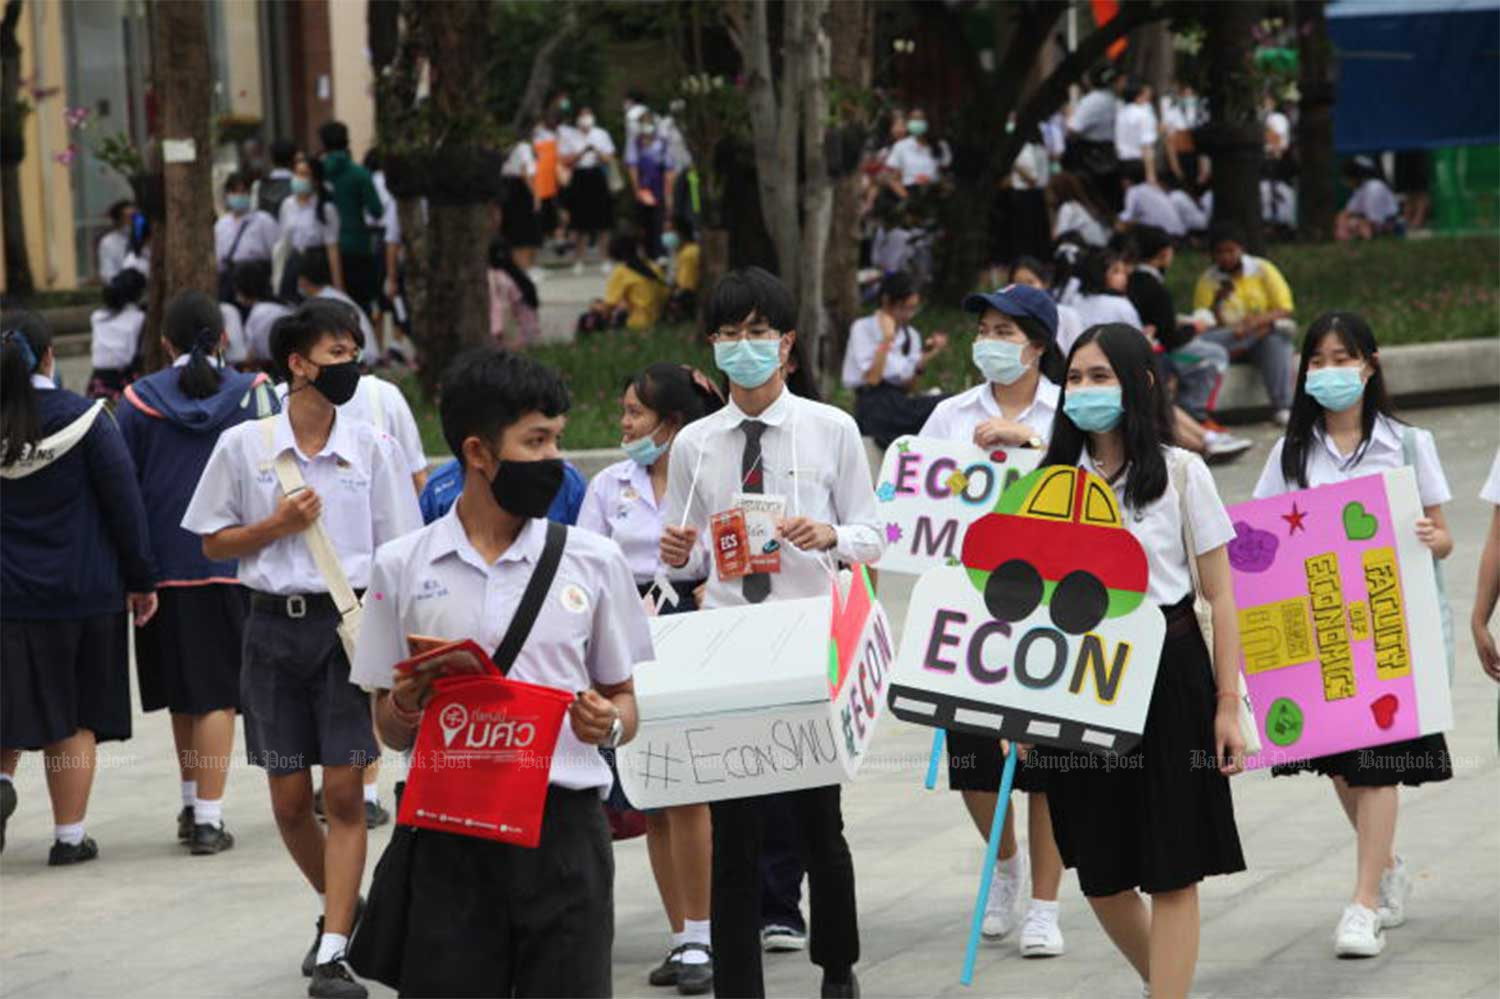 Students wear masks during the SWU Open House 2020 on Saturday at Srinakharinwirot Univesity's Prasanmit campus in Bangkok. The university organises the event to promote its faculties for high school students to choose from. (Photo by Apichit Jinakul)